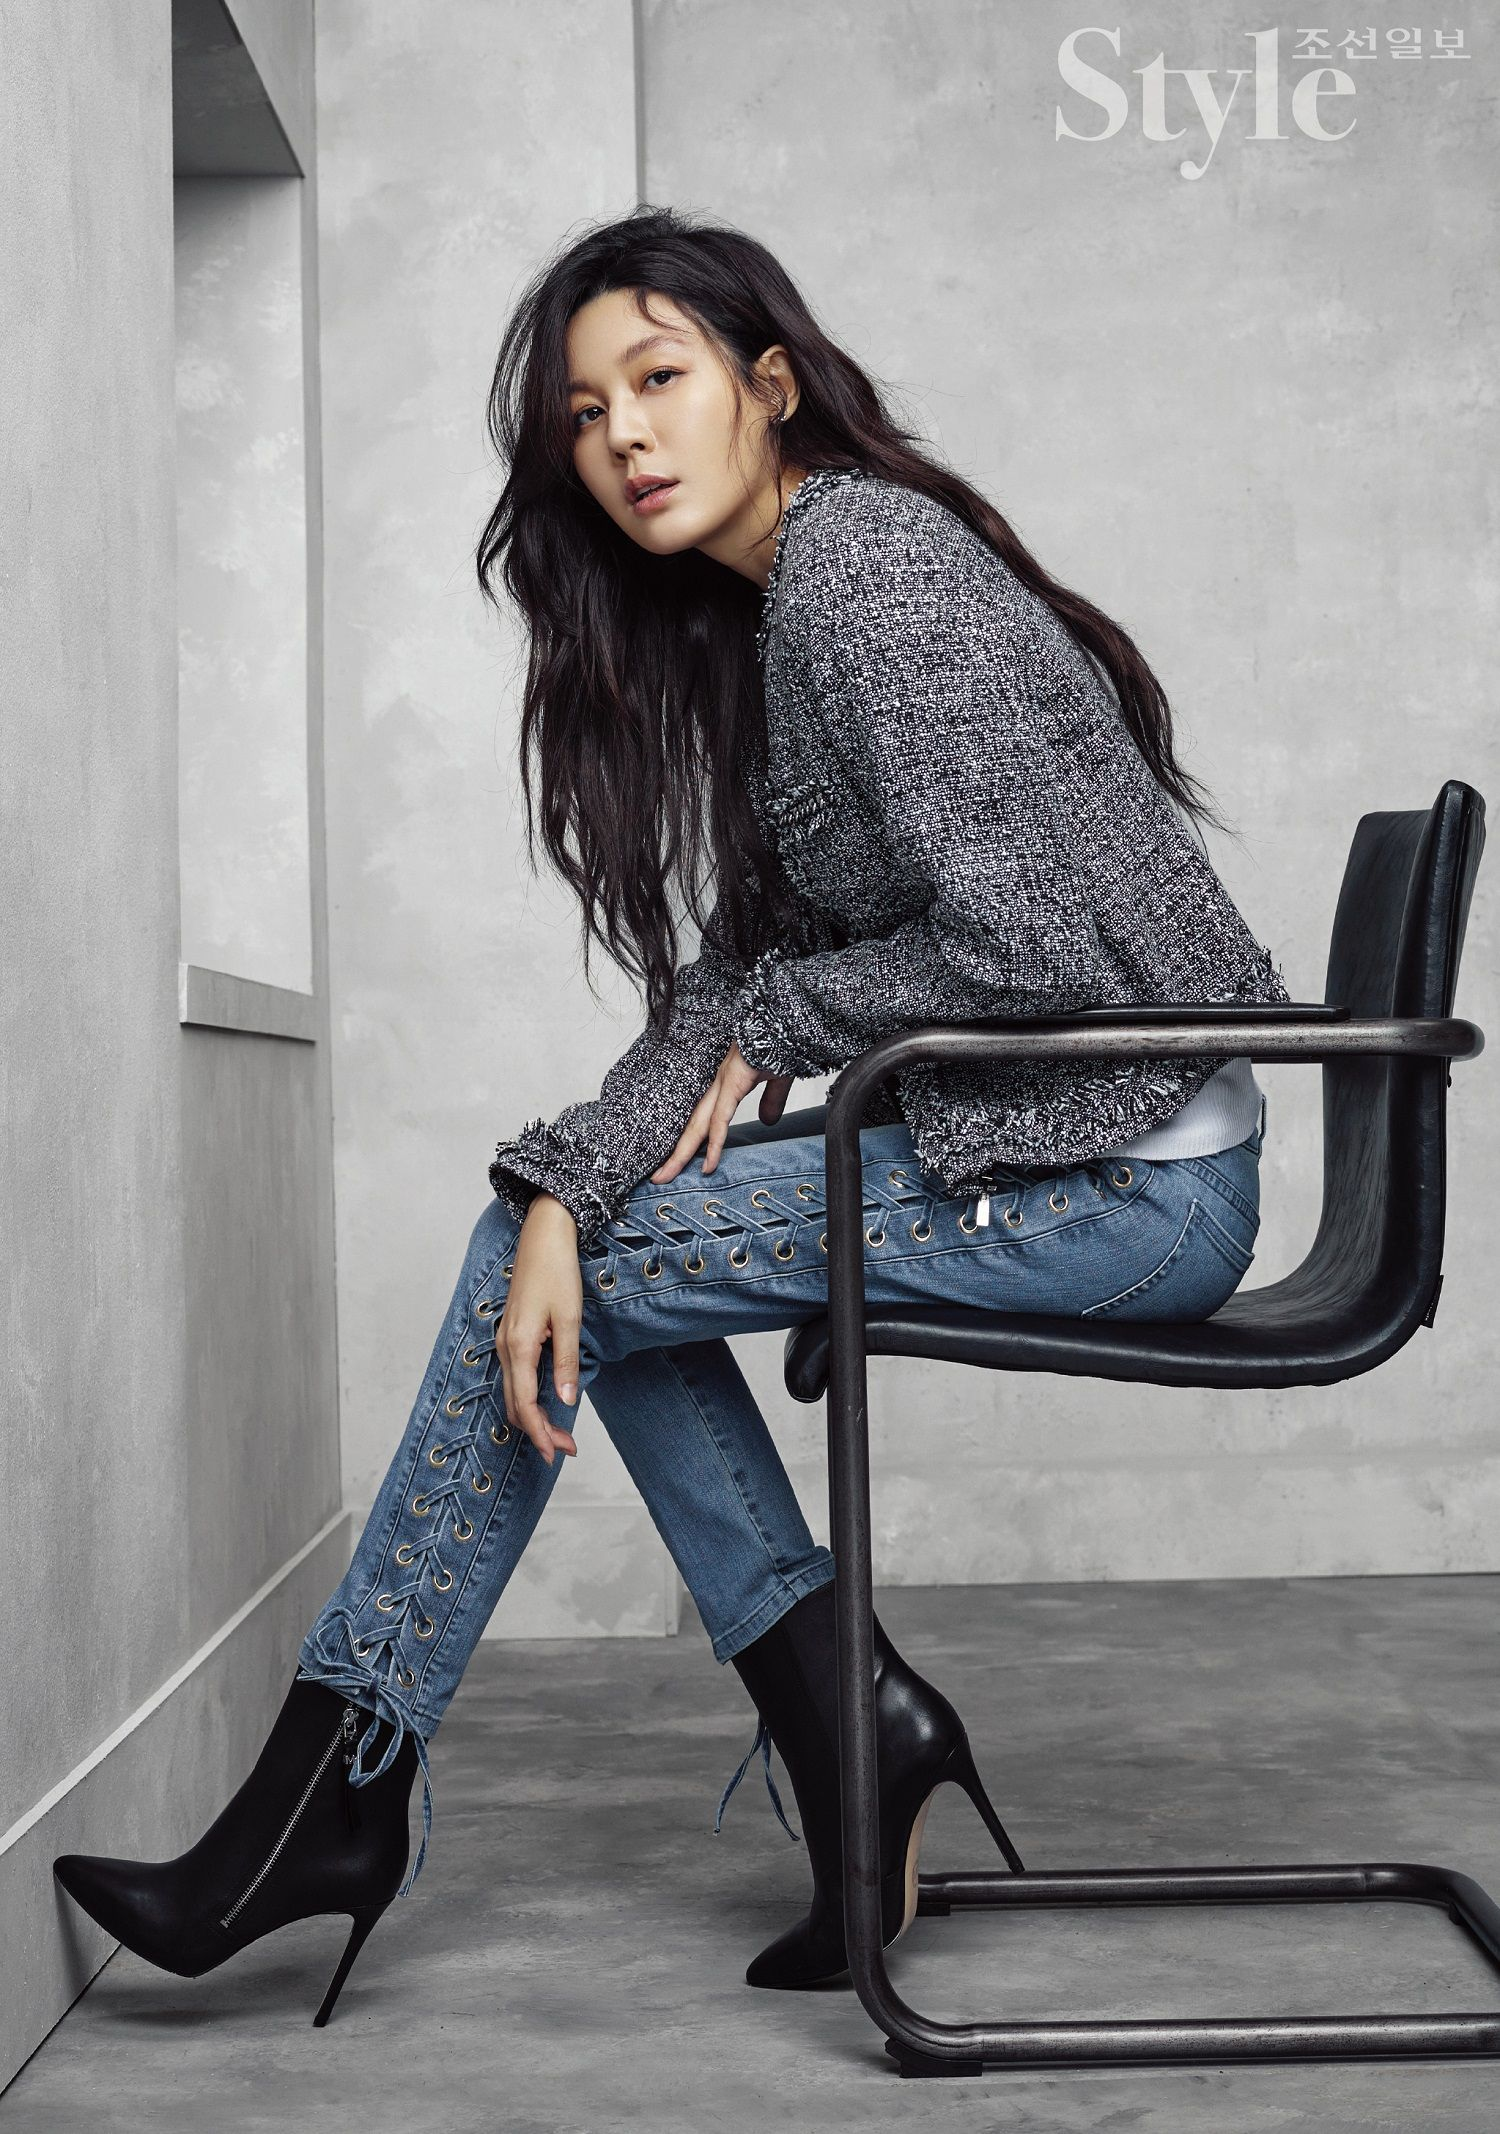 Pin By I Are Book On Kpop Idols Style Korean Actresses Actresses